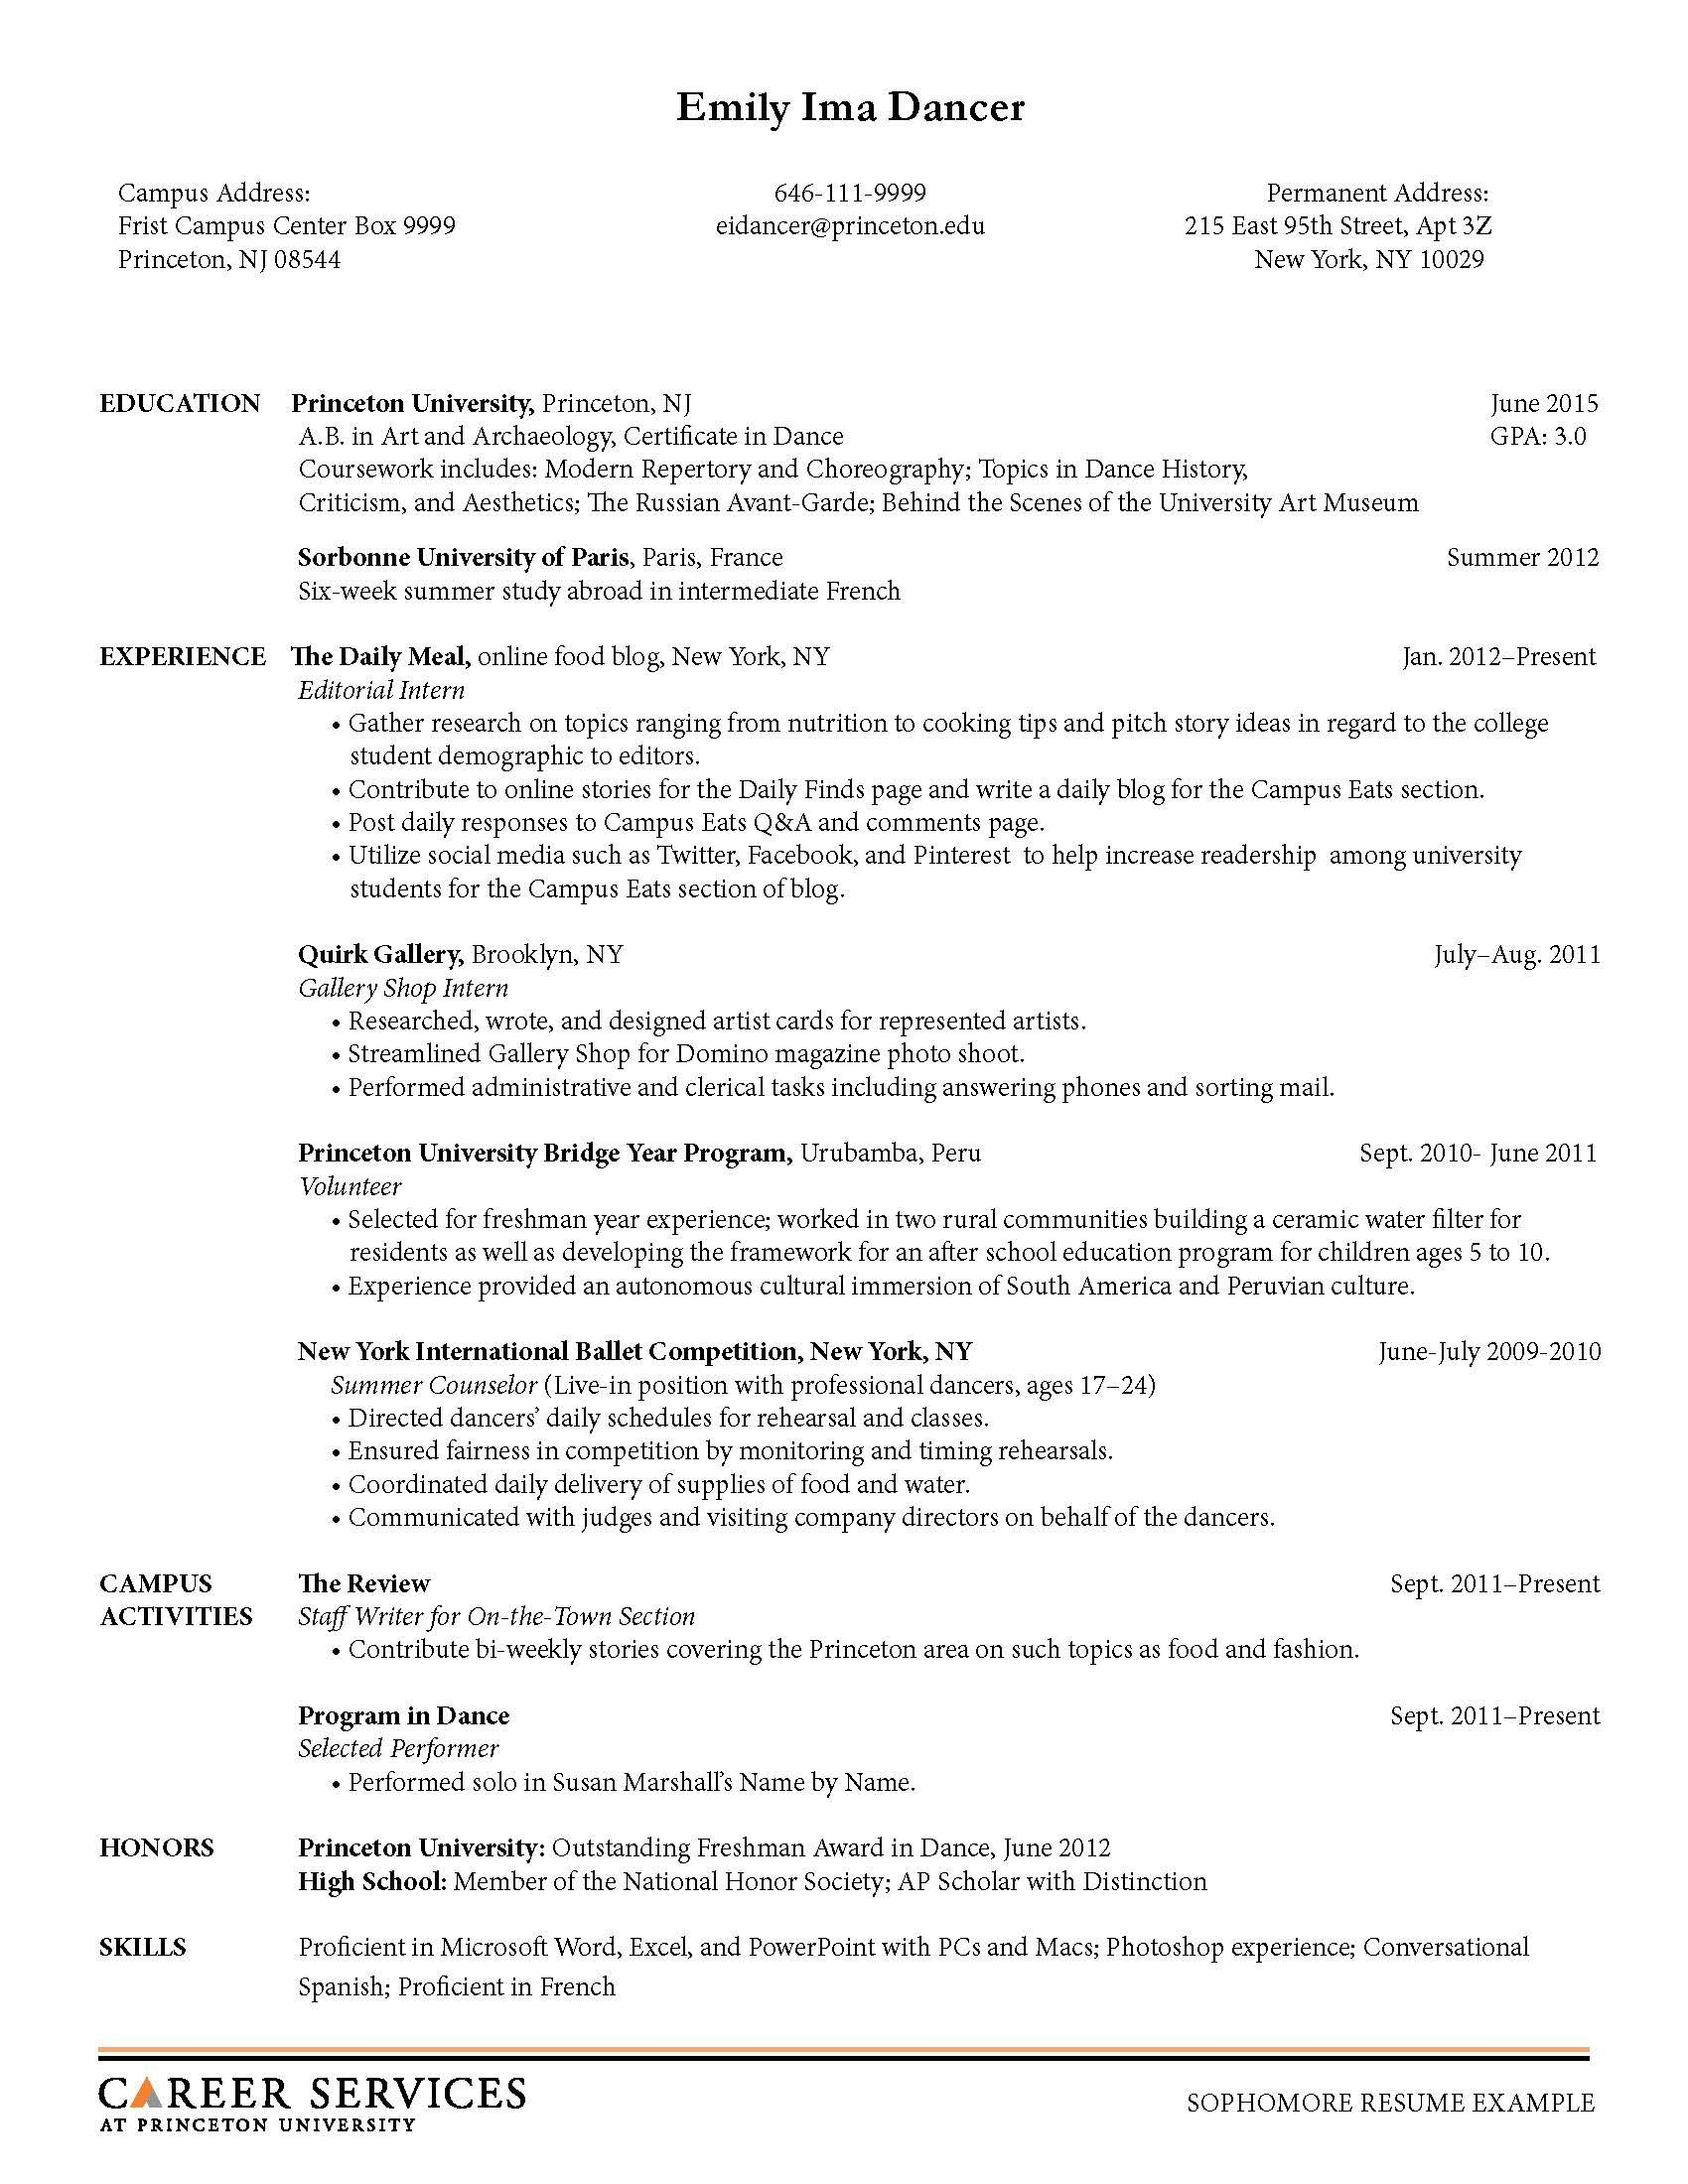 Opposenewapstandardsus  Marvellous Sample Resume Resume And Career On Pinterest With Hot Resume Skills For Retail Besides Dentist Resume Sample Furthermore Resume Examples Education With Delightful Resume For College Applications Also Senior Administrative Assistant Resume In Addition Data Entry Resume Sample And Banking Resume Samples As Well As Help With Writing A Resume Additionally Resume Help Skills From Pinterestcom With Opposenewapstandardsus  Hot Sample Resume Resume And Career On Pinterest With Delightful Resume Skills For Retail Besides Dentist Resume Sample Furthermore Resume Examples Education And Marvellous Resume For College Applications Also Senior Administrative Assistant Resume In Addition Data Entry Resume Sample From Pinterestcom